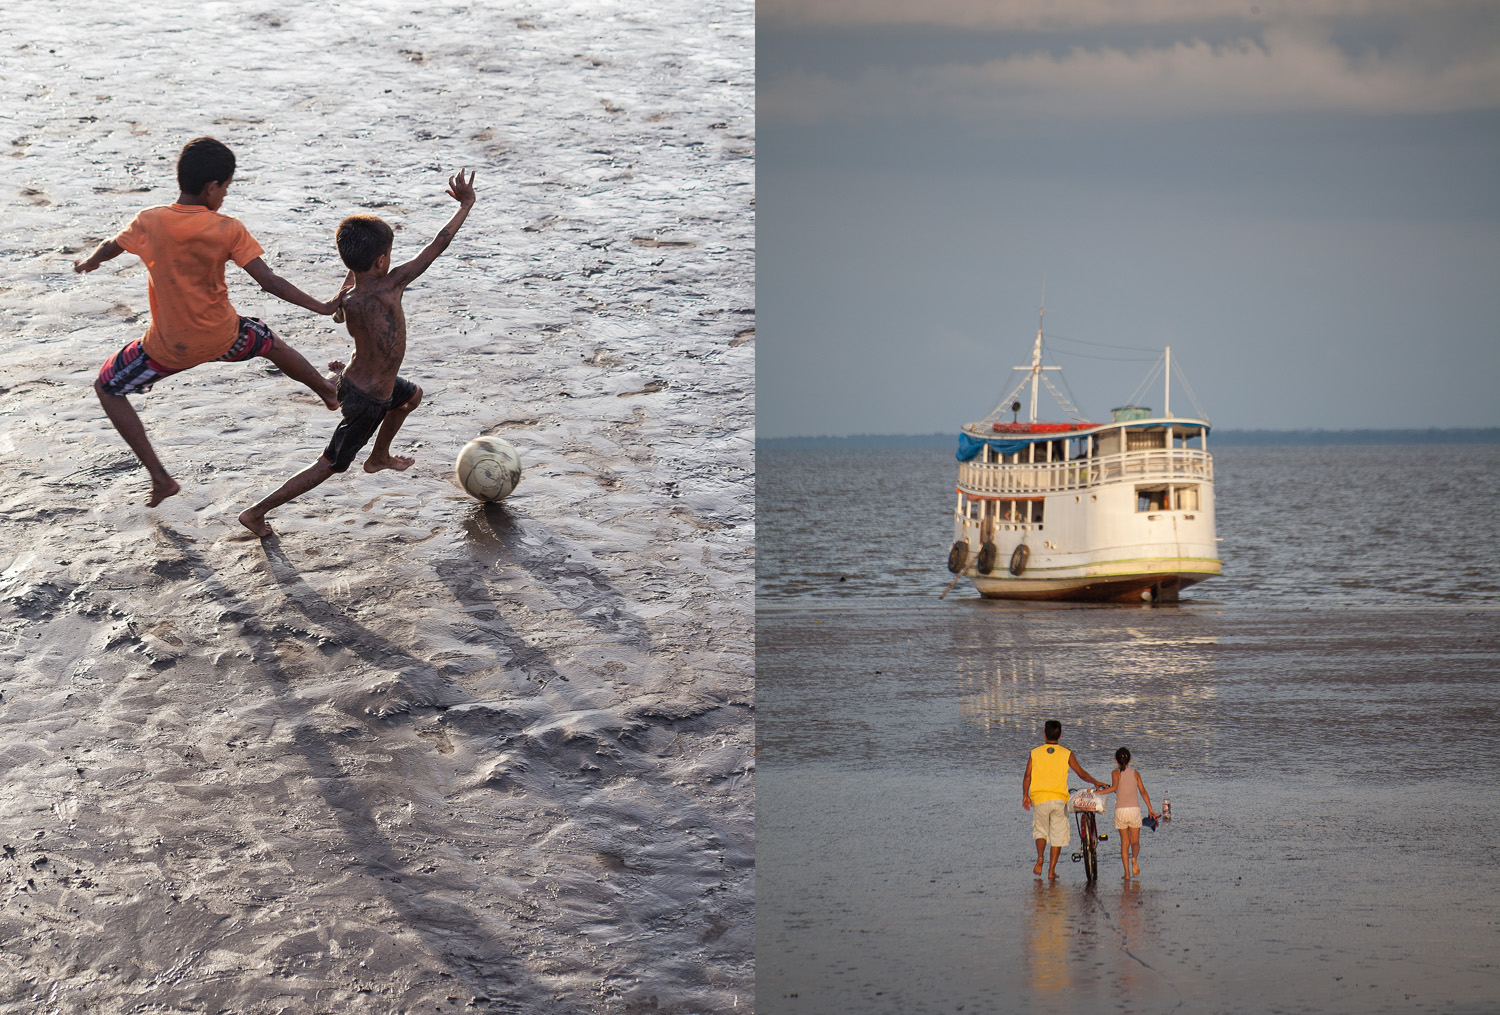 Low tide football at Macapá's river bank